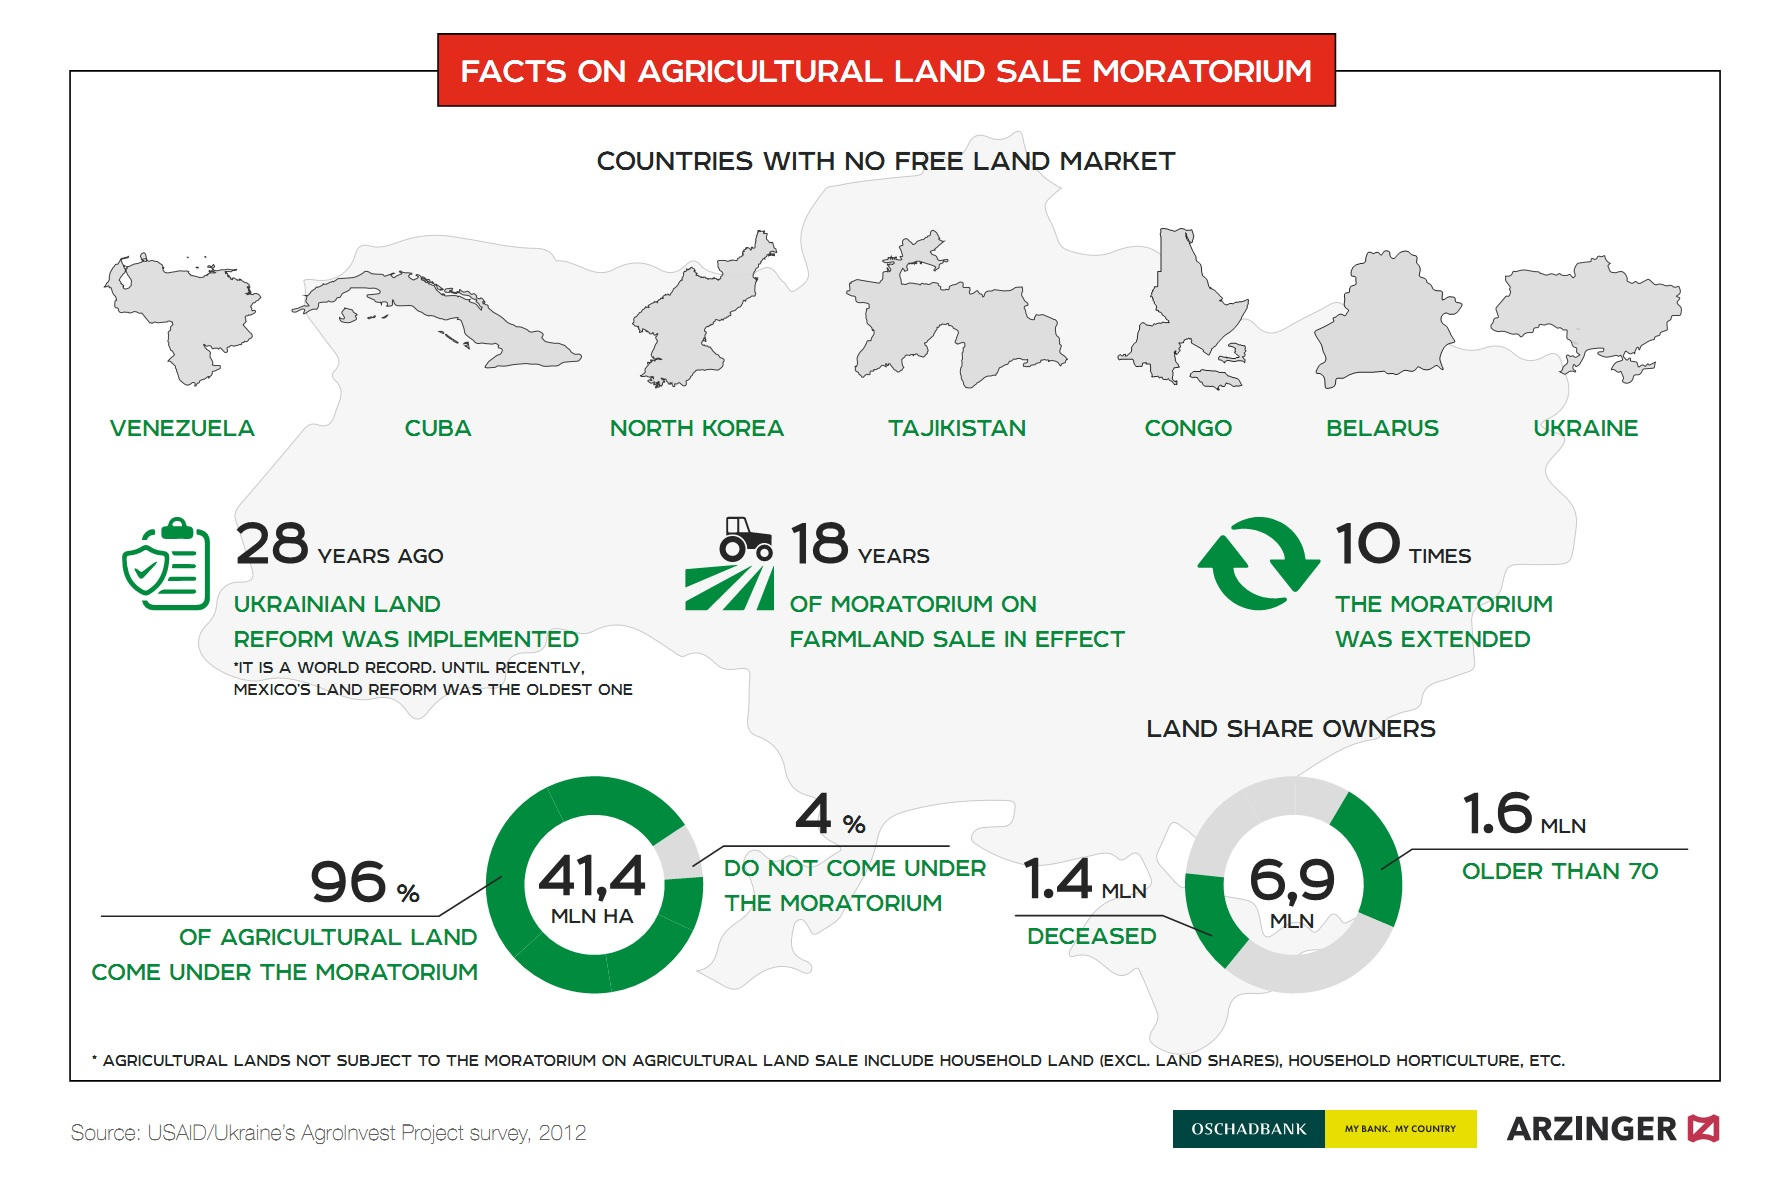 Facts on agricultural land sale moratorium (click for full resolution)